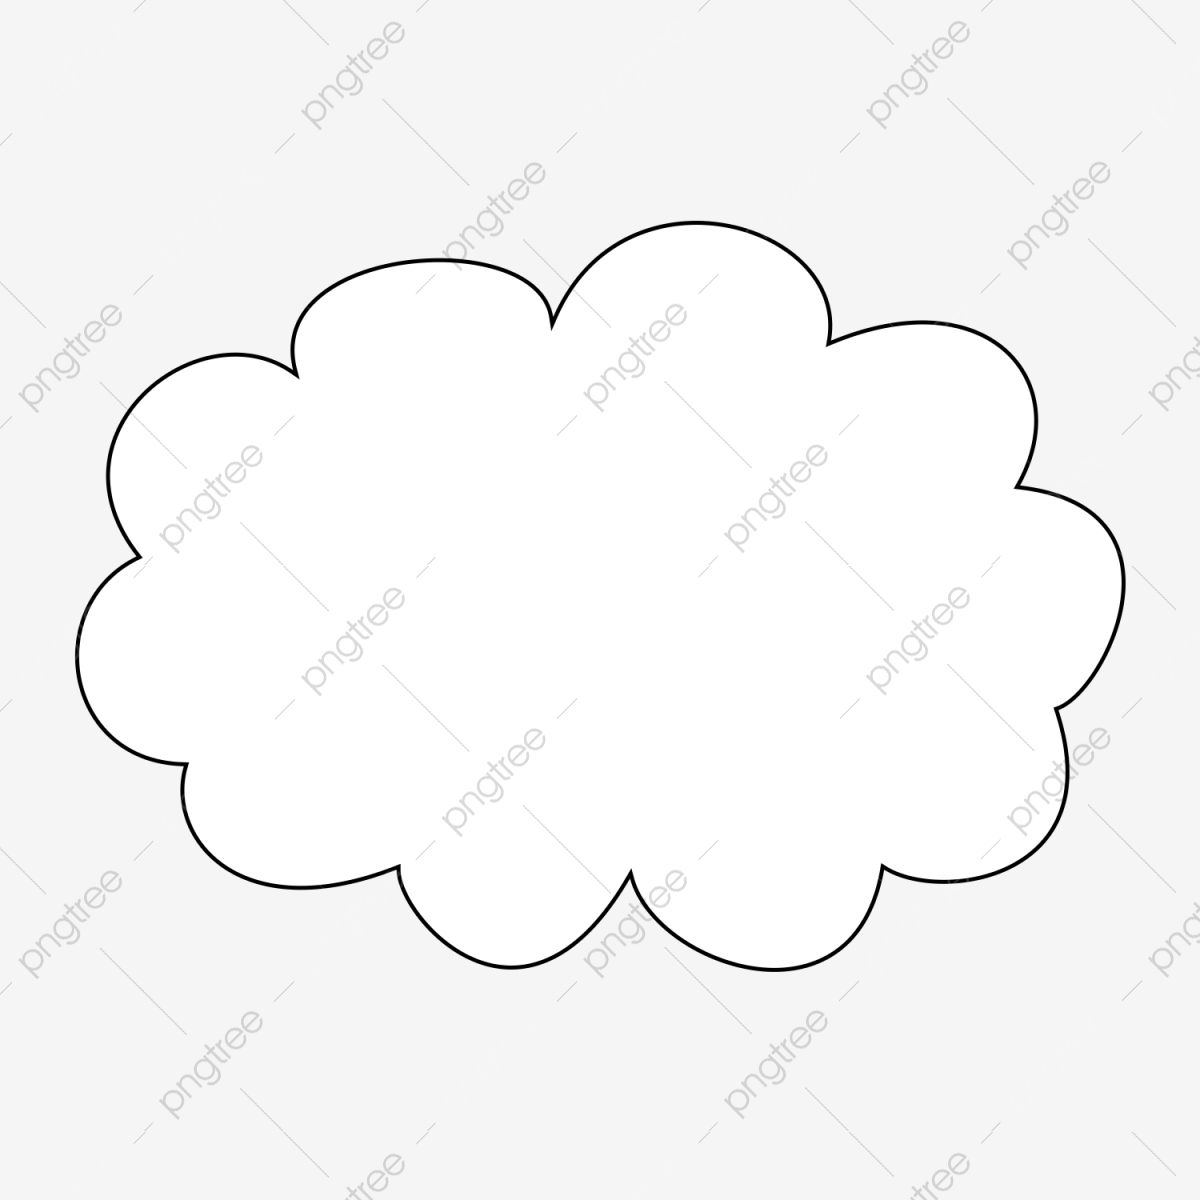 Cartoon Clouds Cloud Clipart Black And White Cartoon Cloud Png Transparent Clipart Image And Psd File For Free Download Cartoon Clouds Clipart Black And White Clip Art